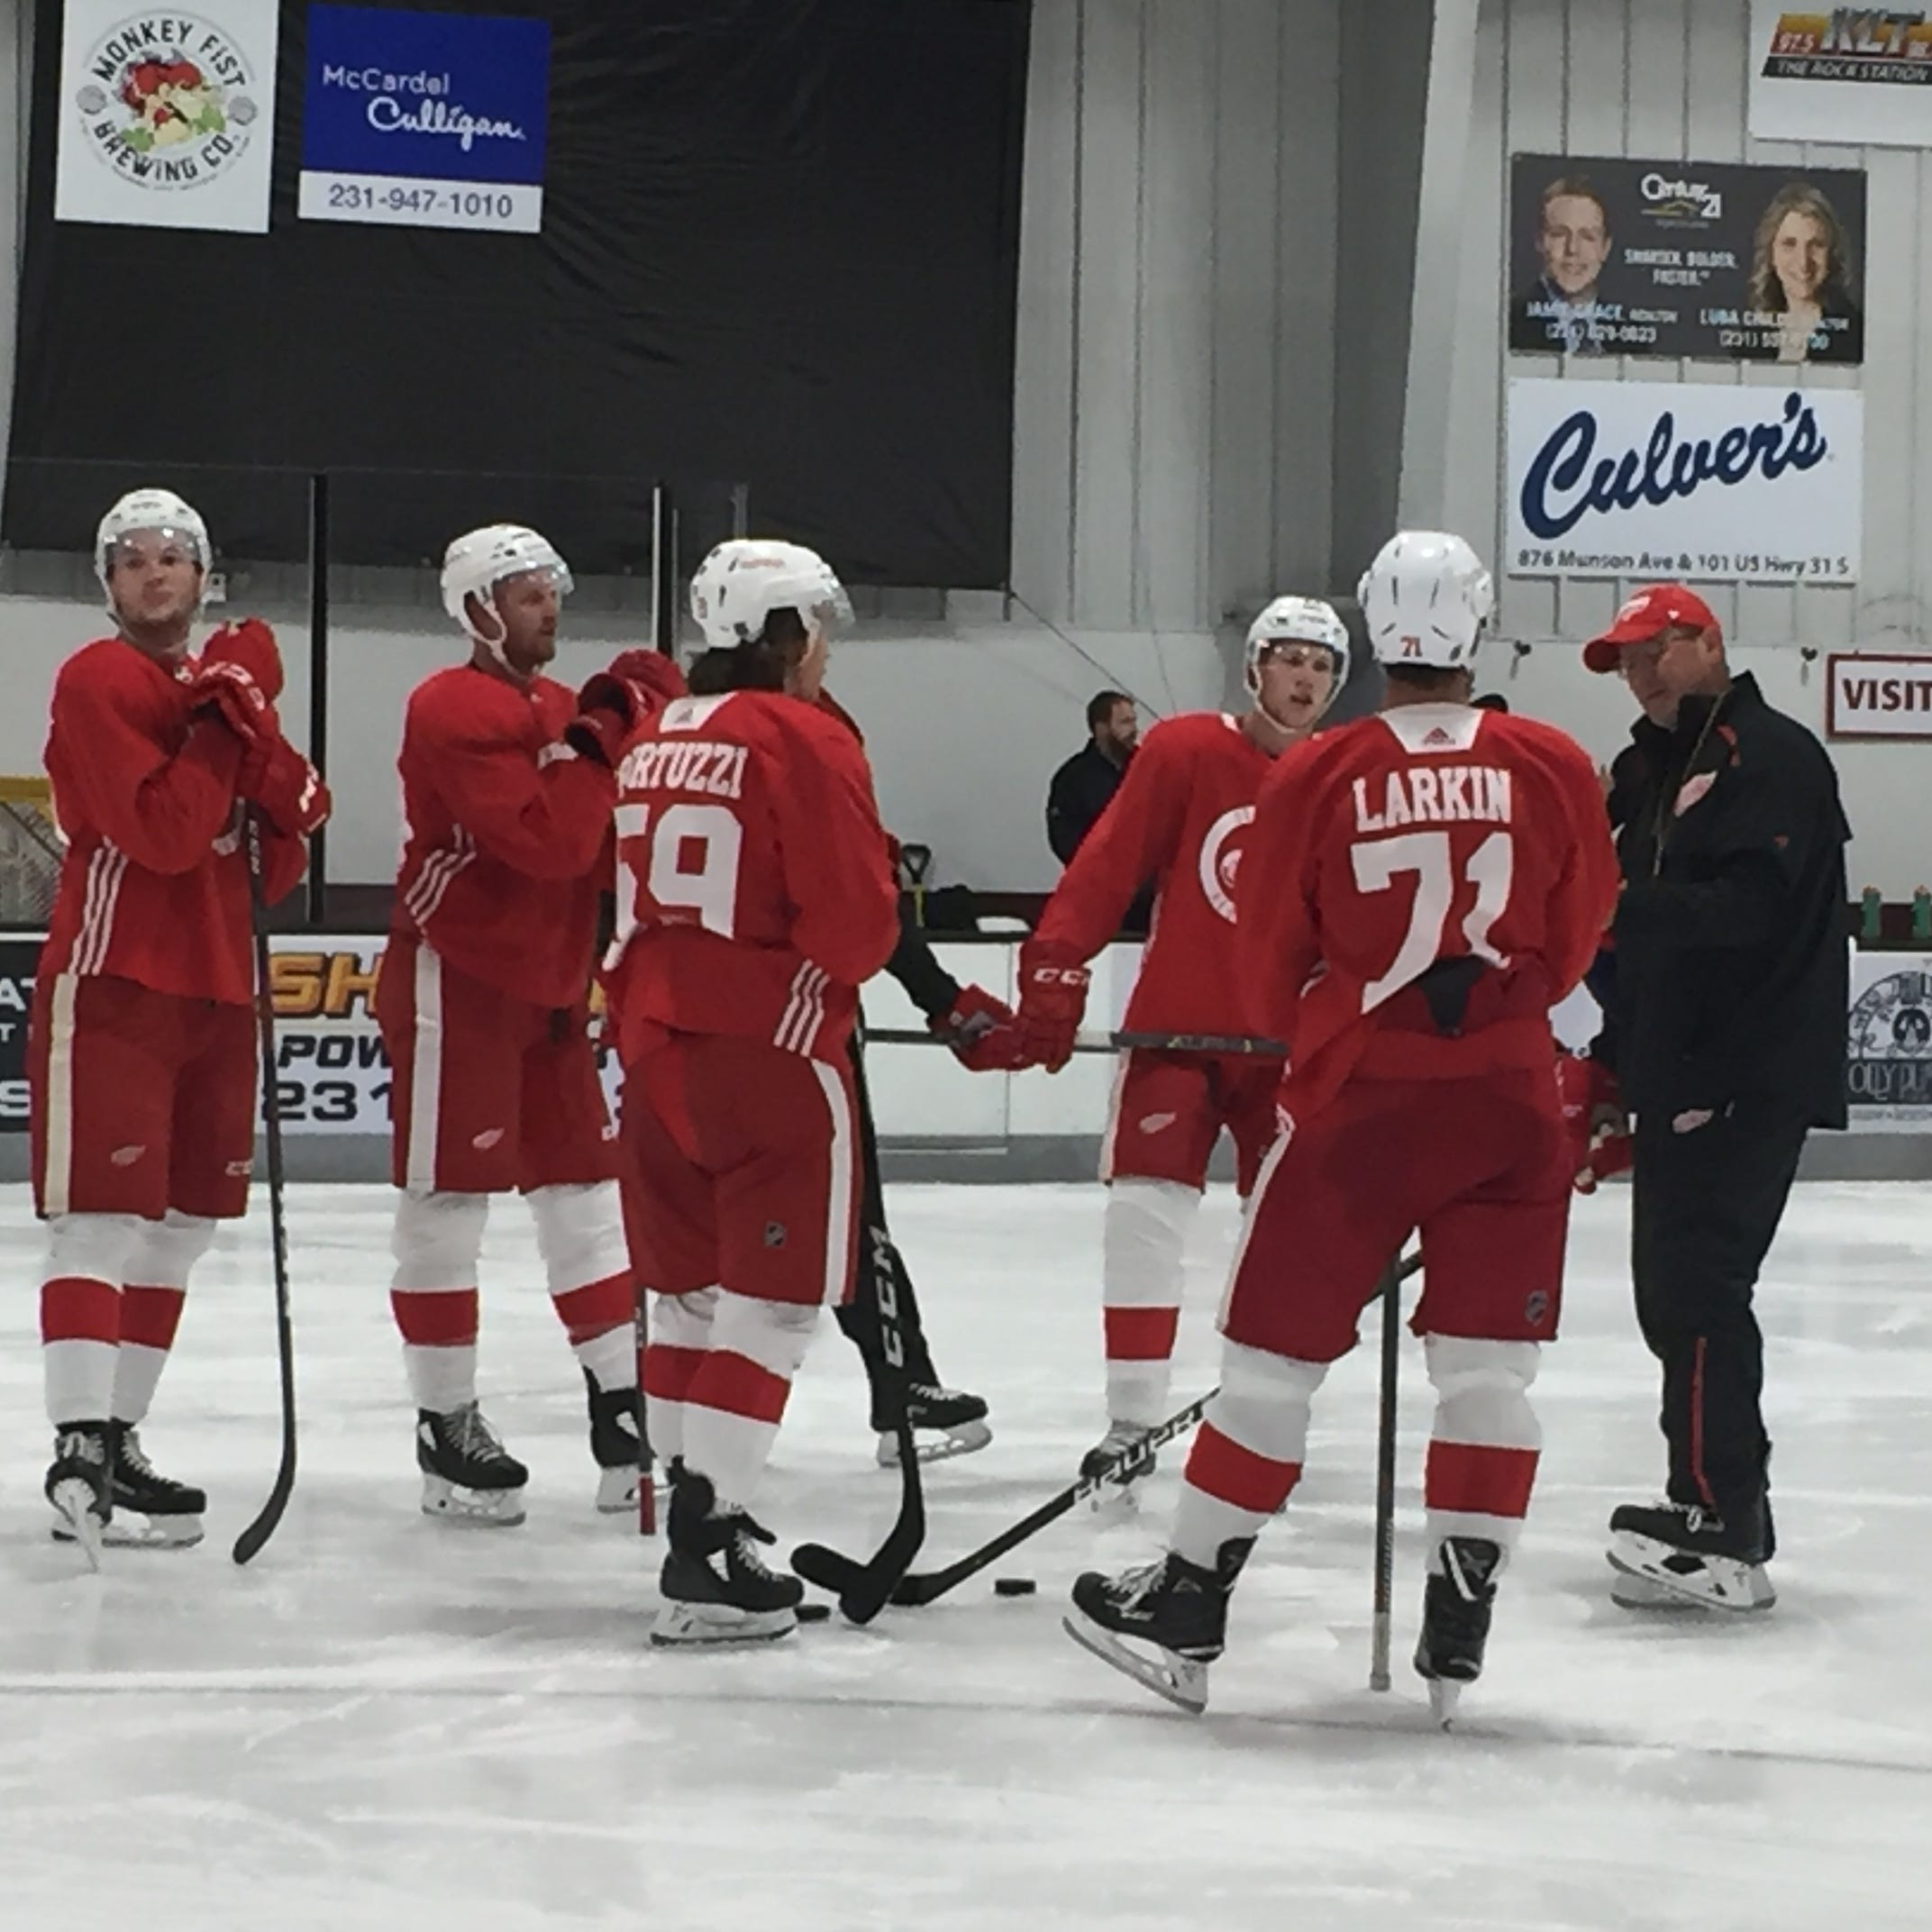 Dan Bylsma instructs one of the Red Wings' power play units. Sept. 18, 2018.